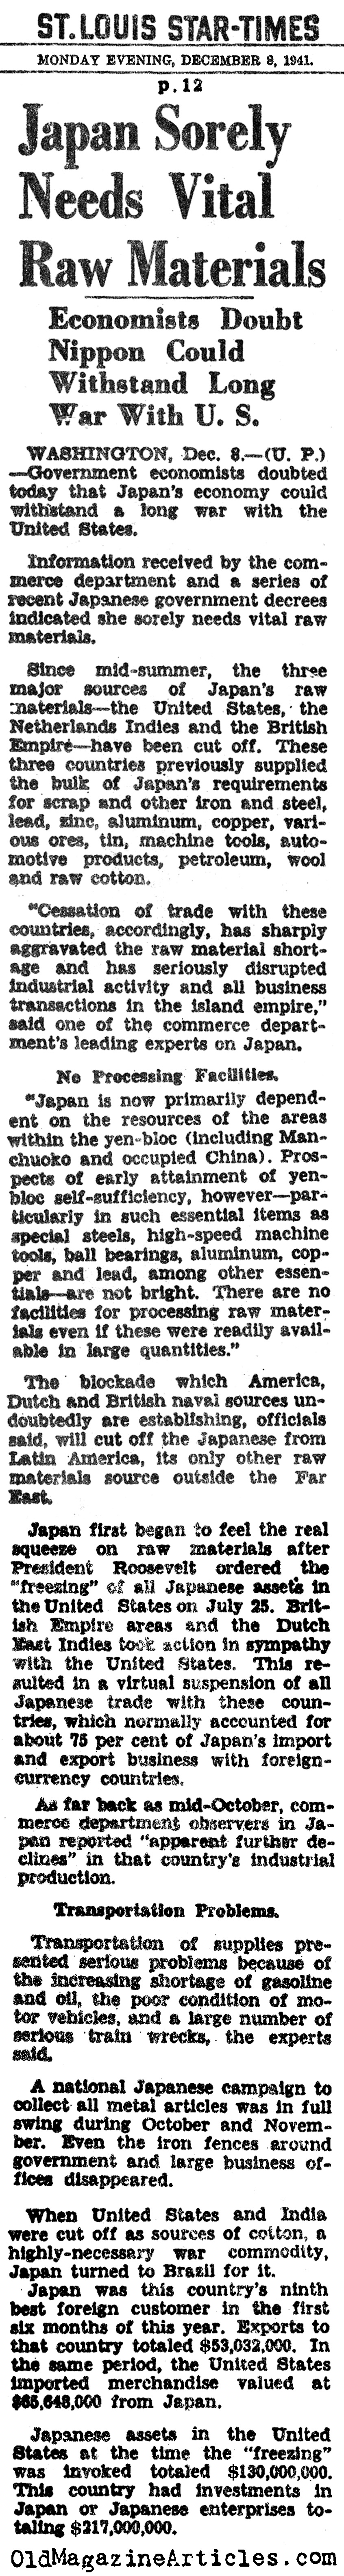 Japan Could Not Afford to Go to War (St. Louis Star-Times, 1941)